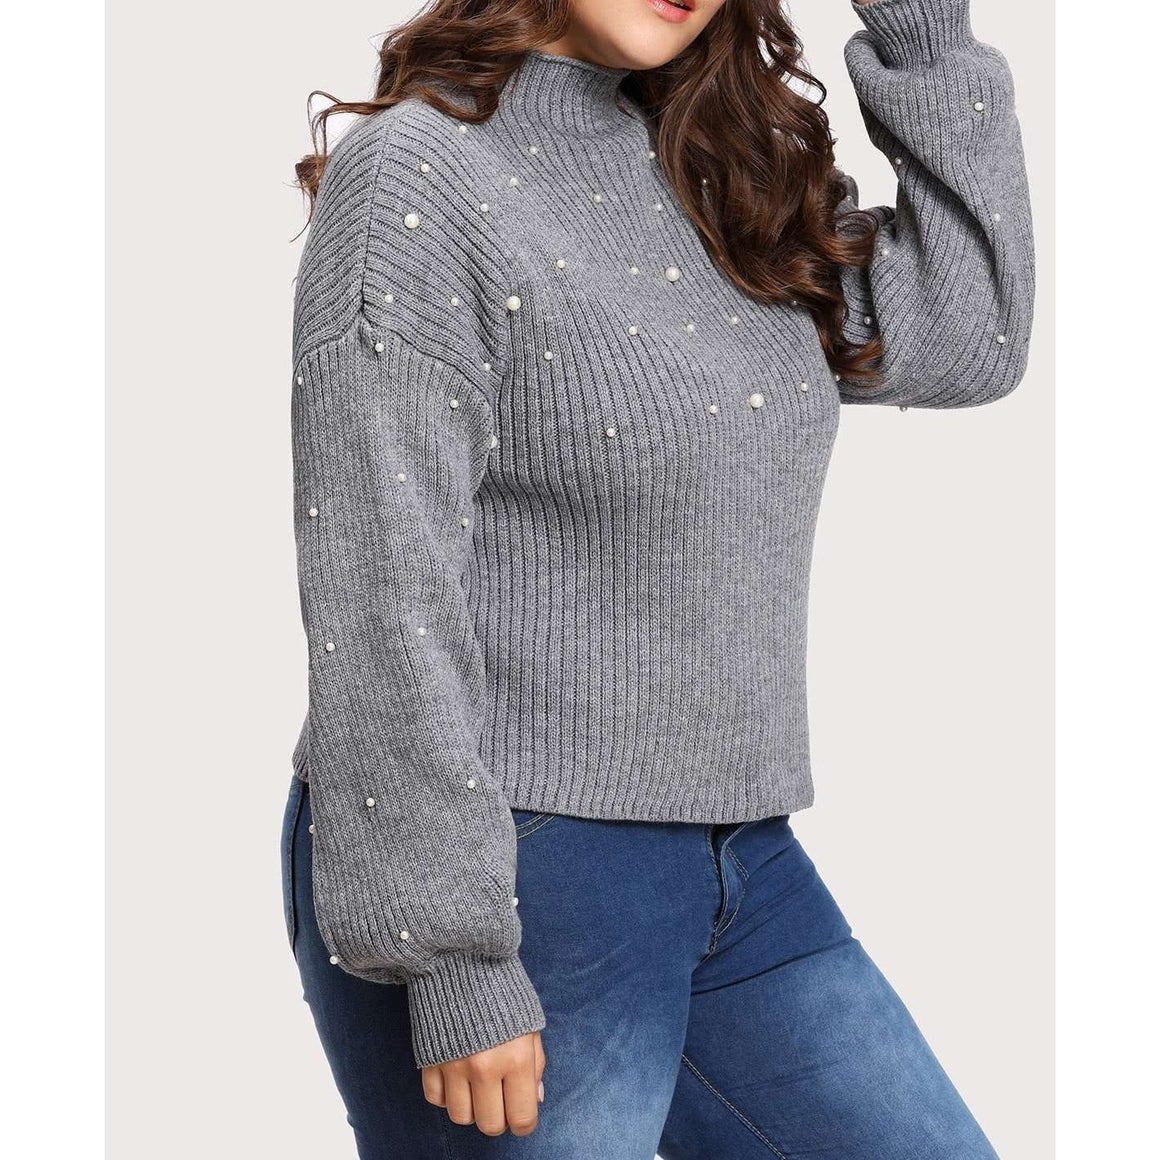 CLOCHE Pearl Jumper-CLOCHE-CLOCHE